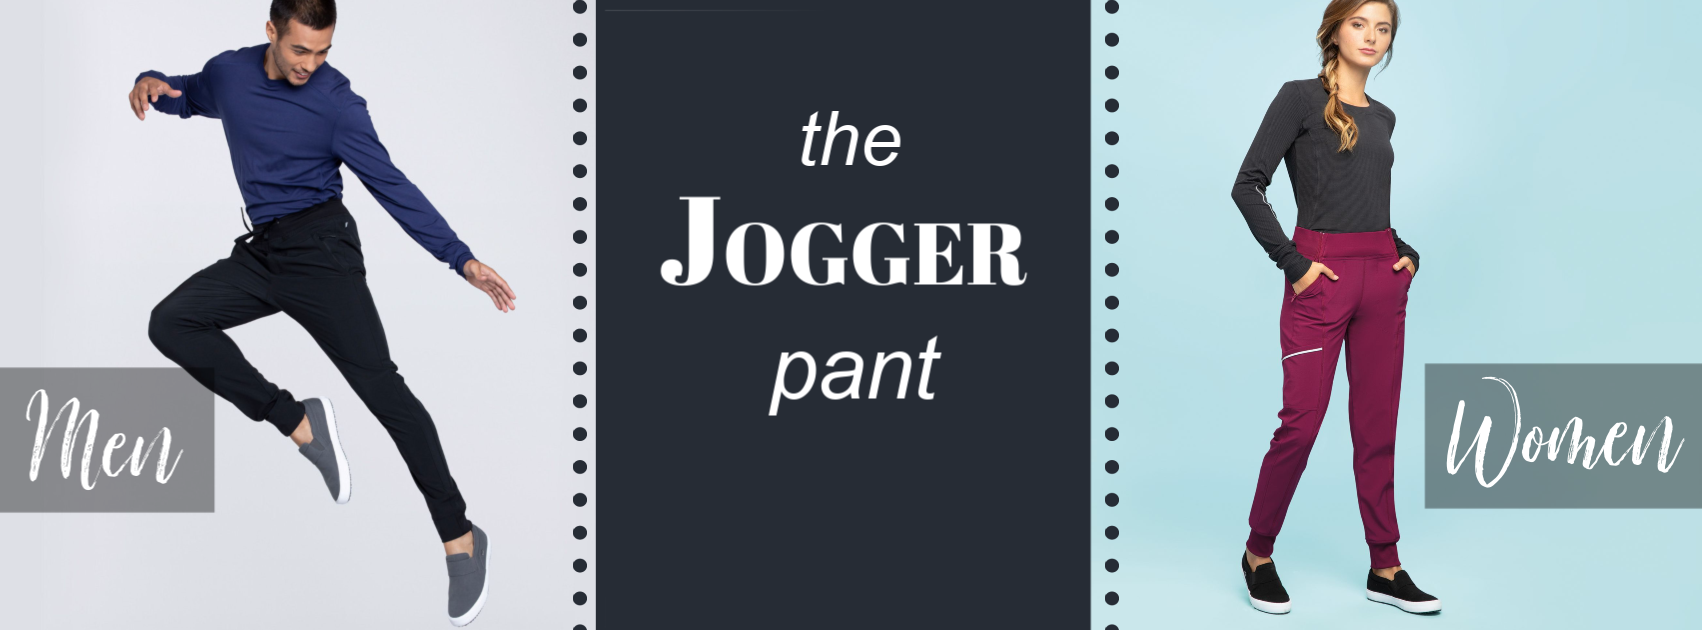 thejoggerpant.png